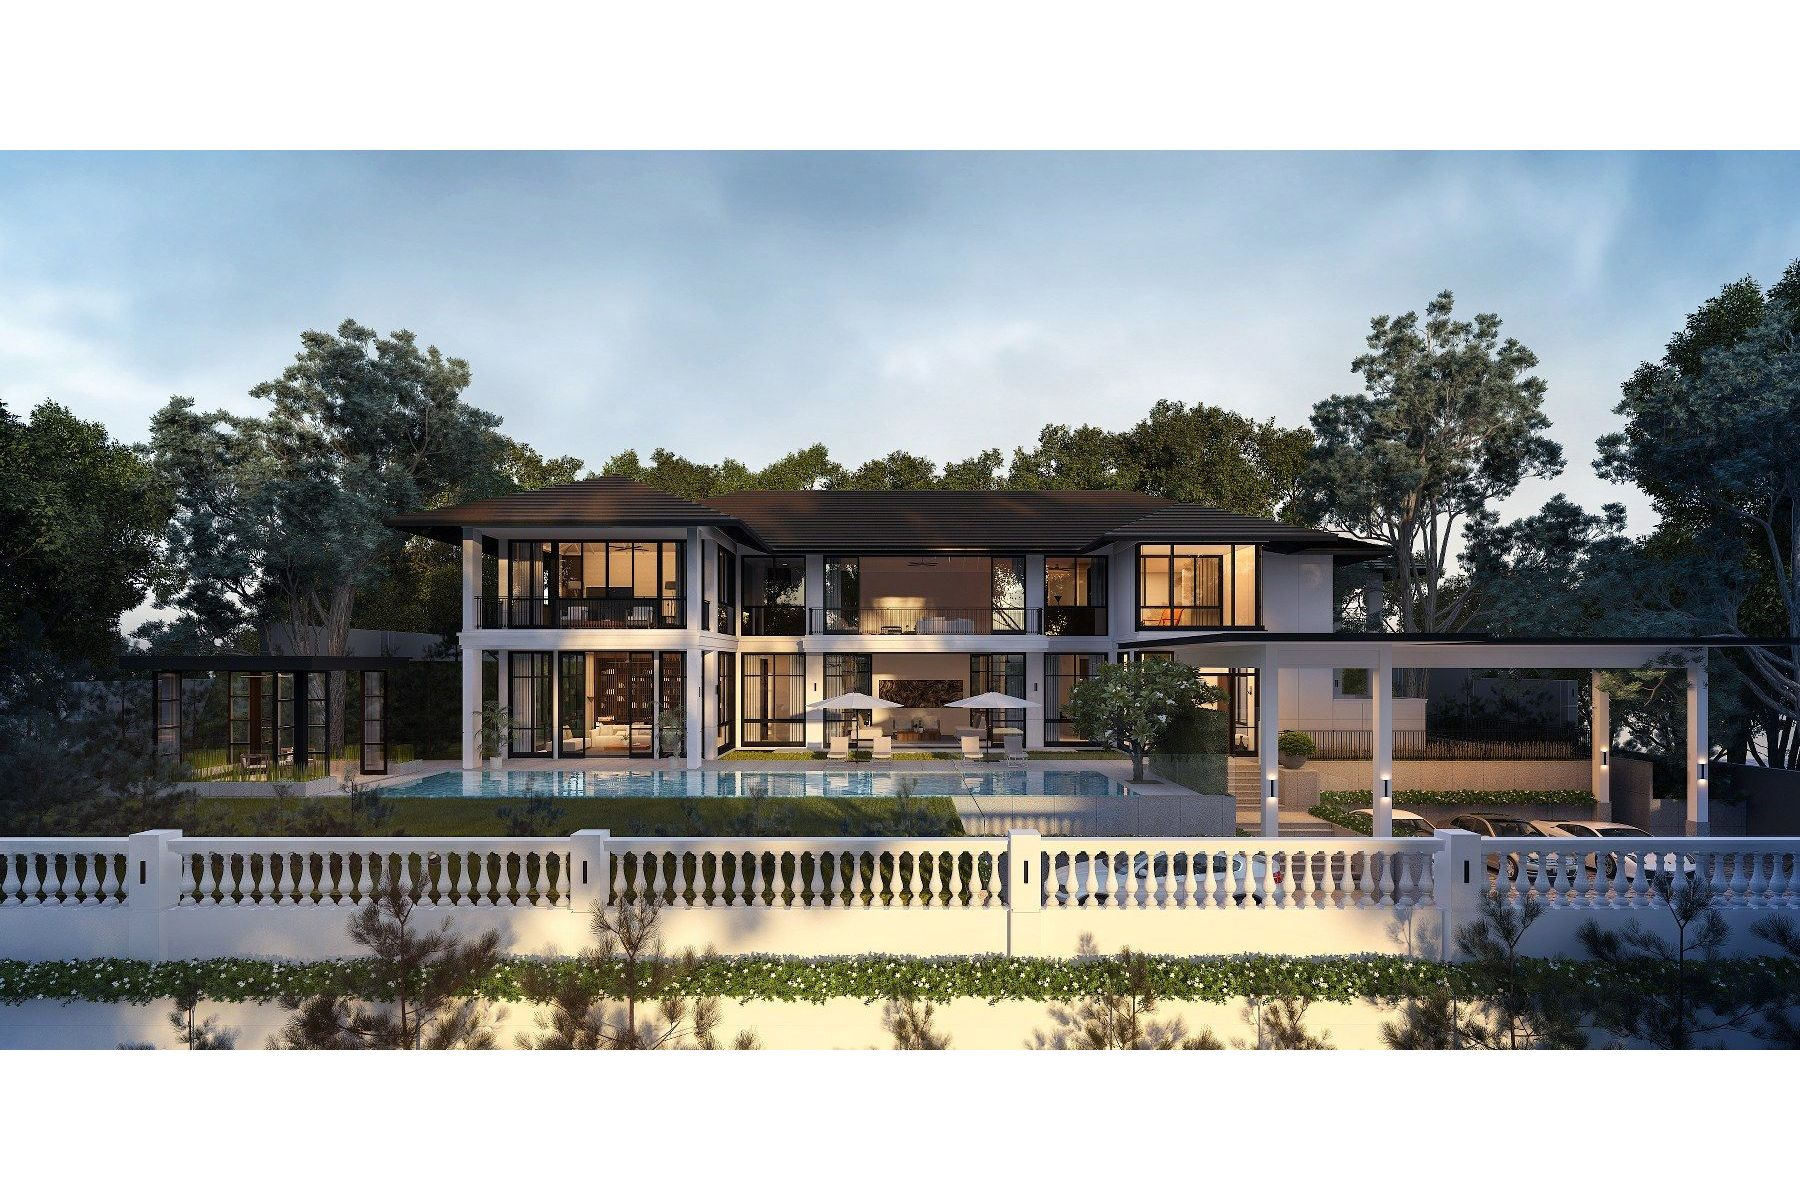 Single Family Home for Sale at Good Class Bungalow Singapore, Cities In Singapore Singapore